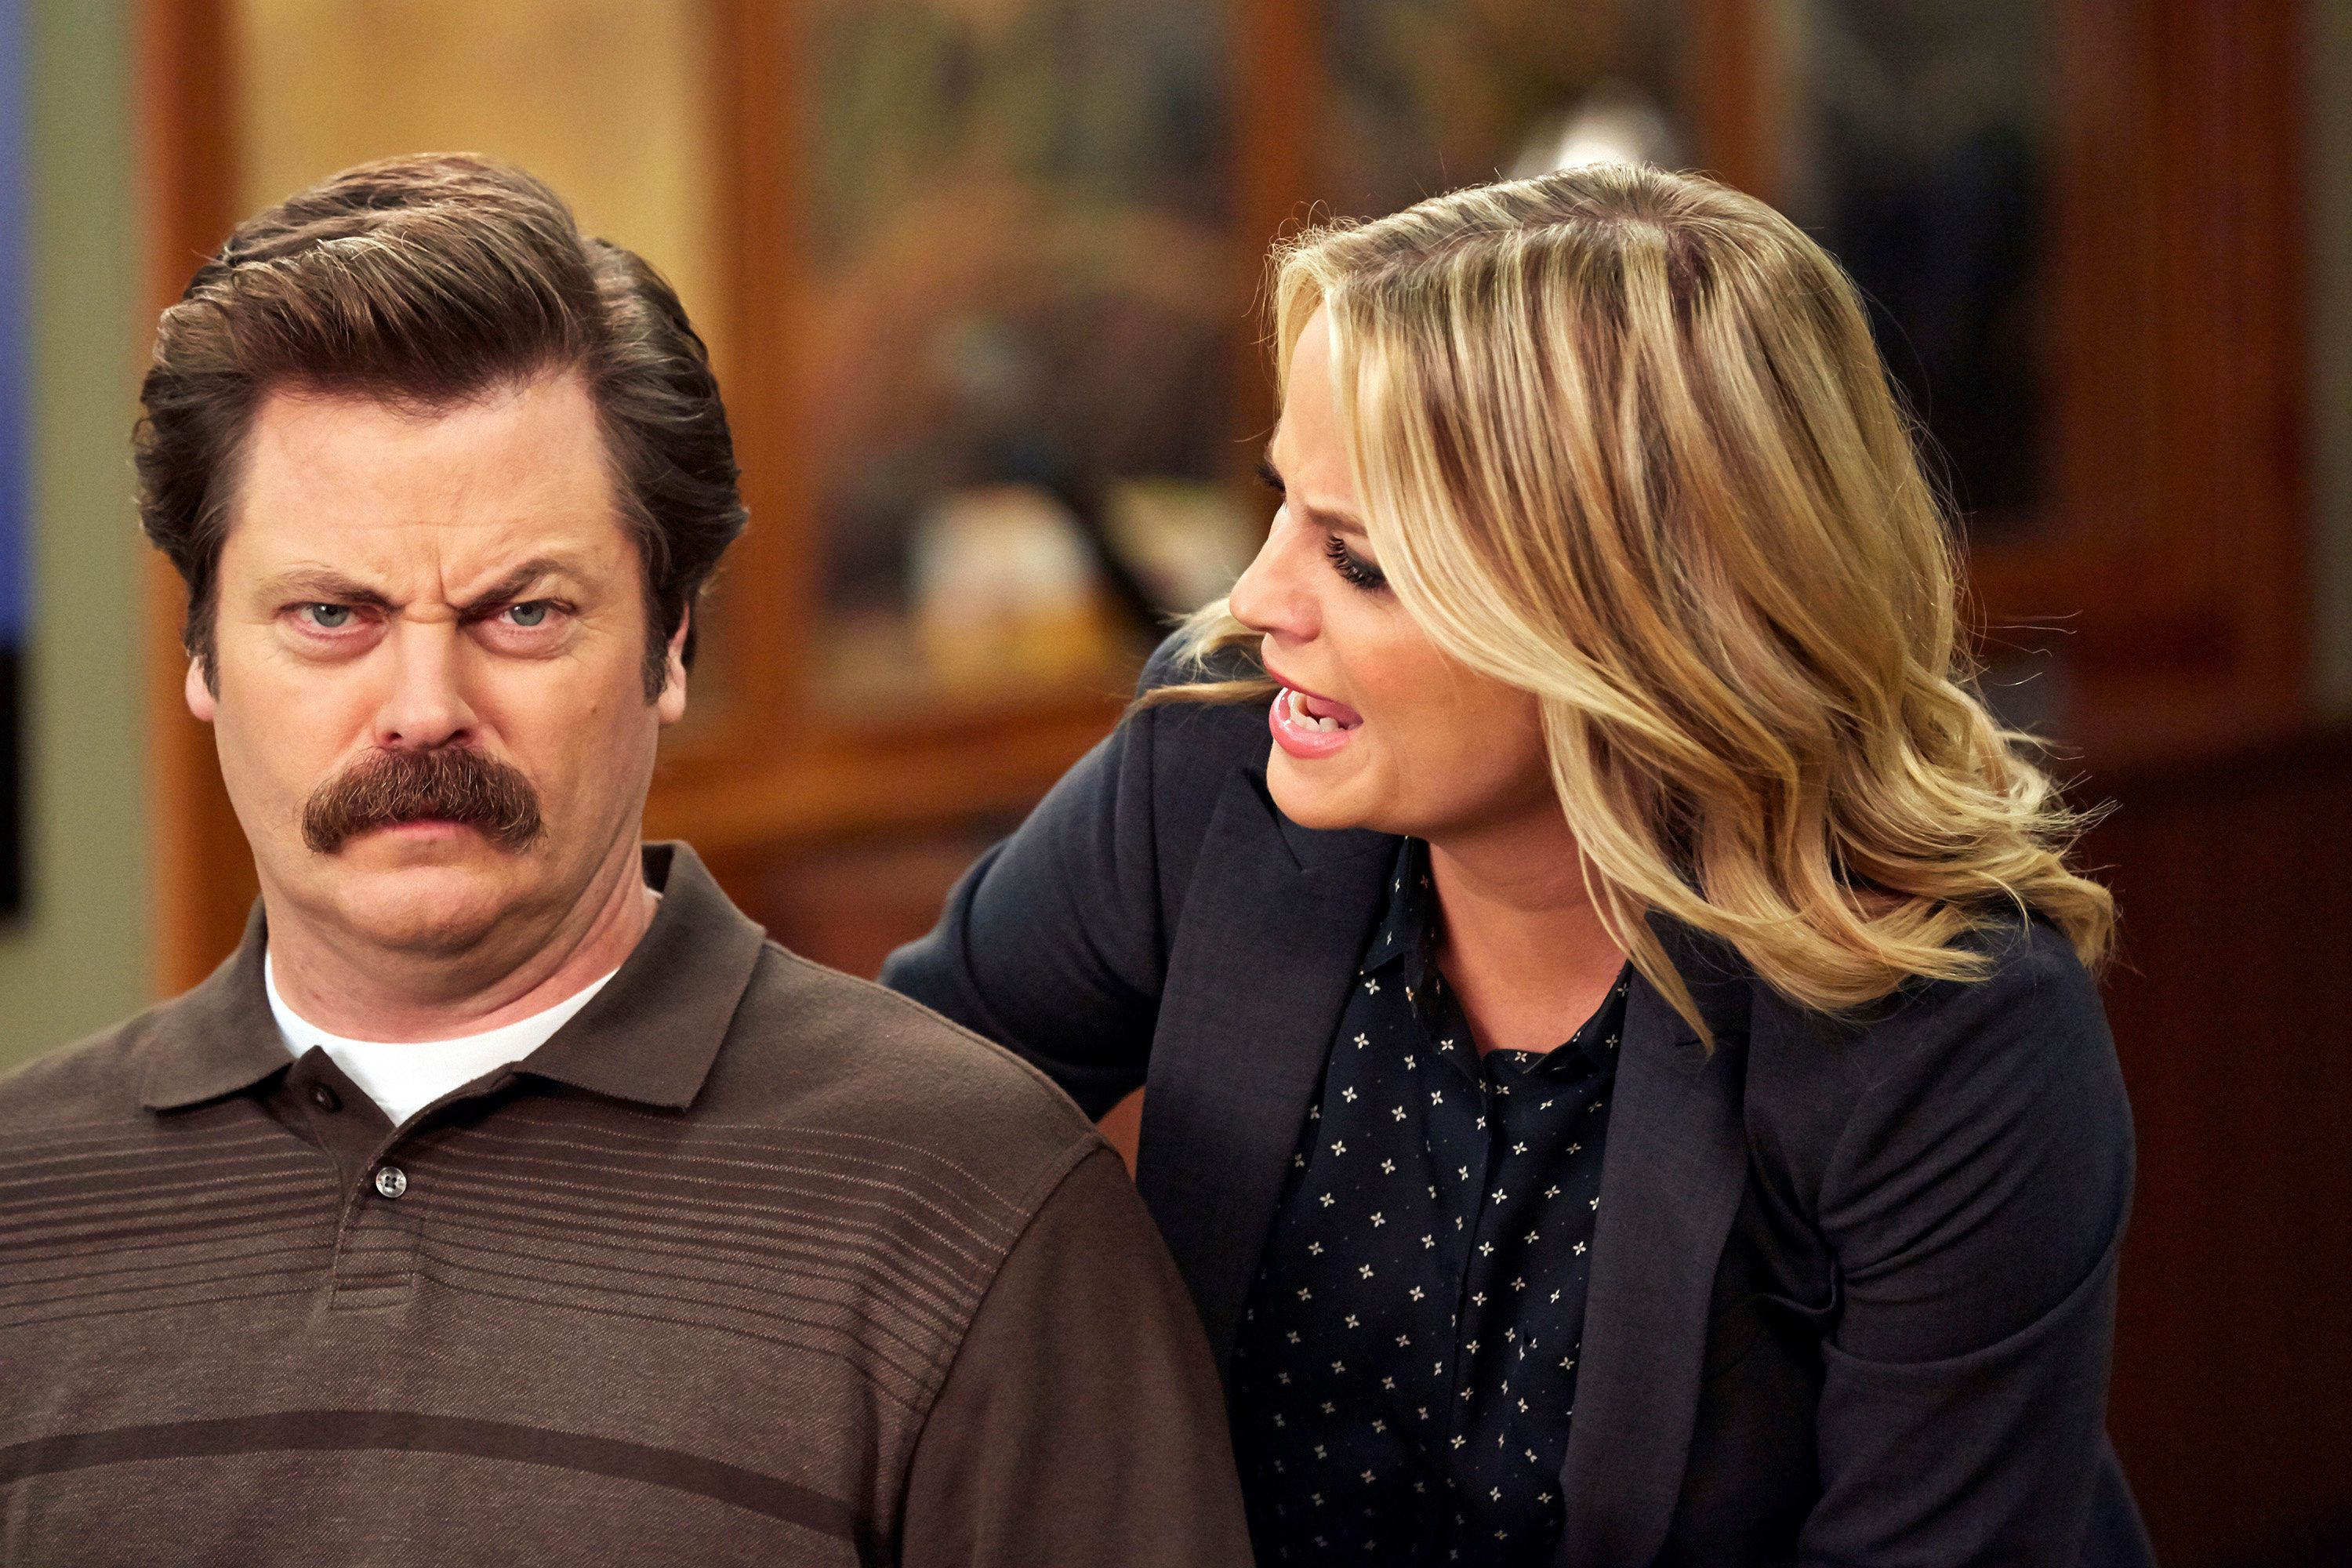 Nick Offerman Shoots Down 'Parks And Rec' Theory About Leslie